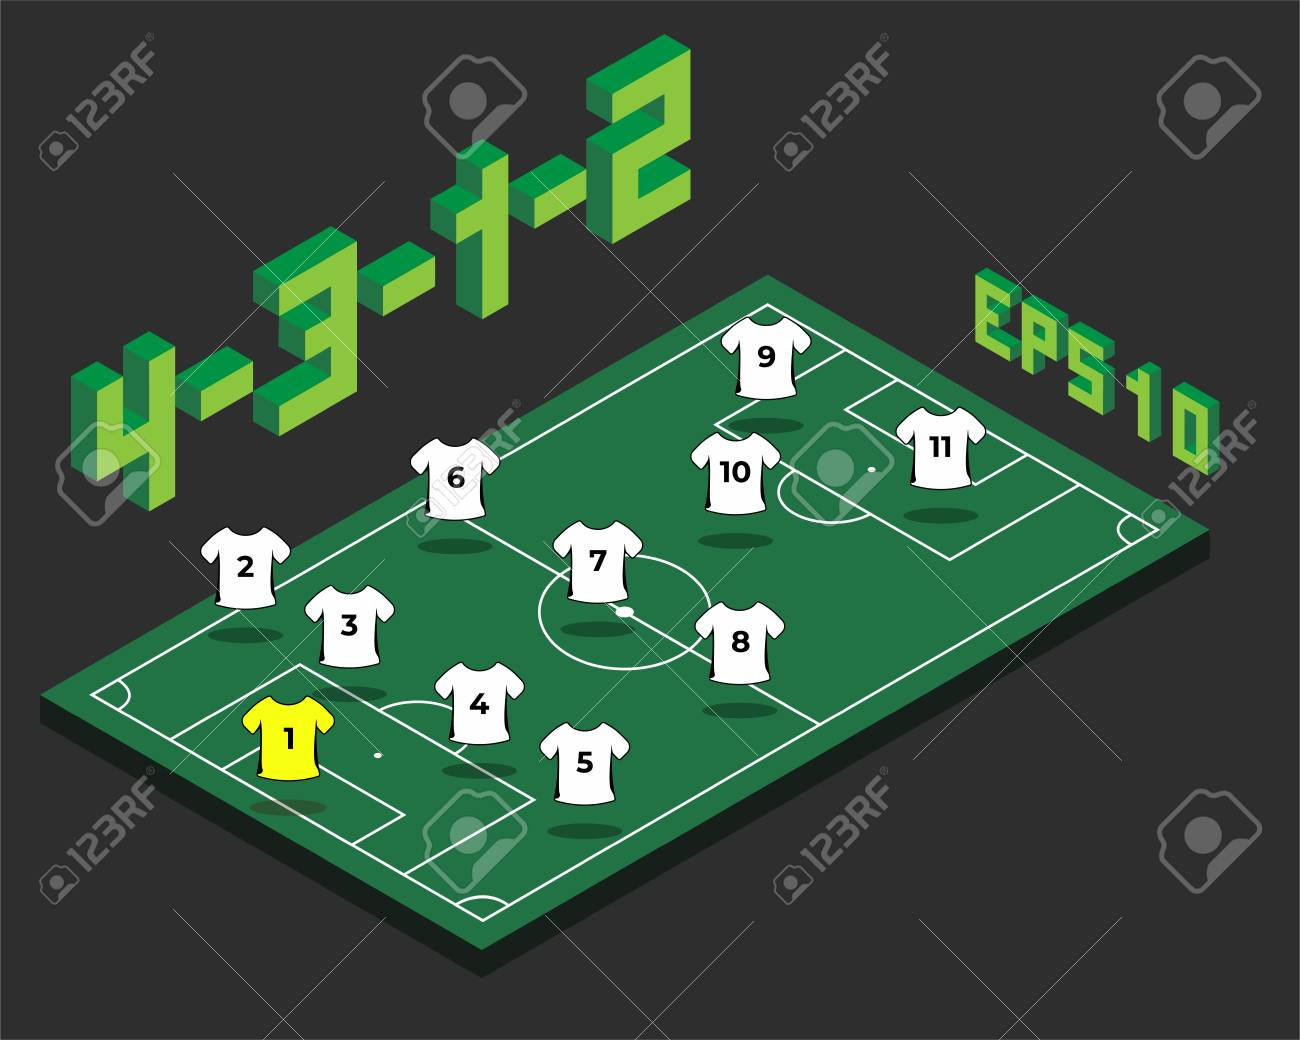 Football 4 3 1 2 Formation With Isometric Field Soccer Popular Strategy